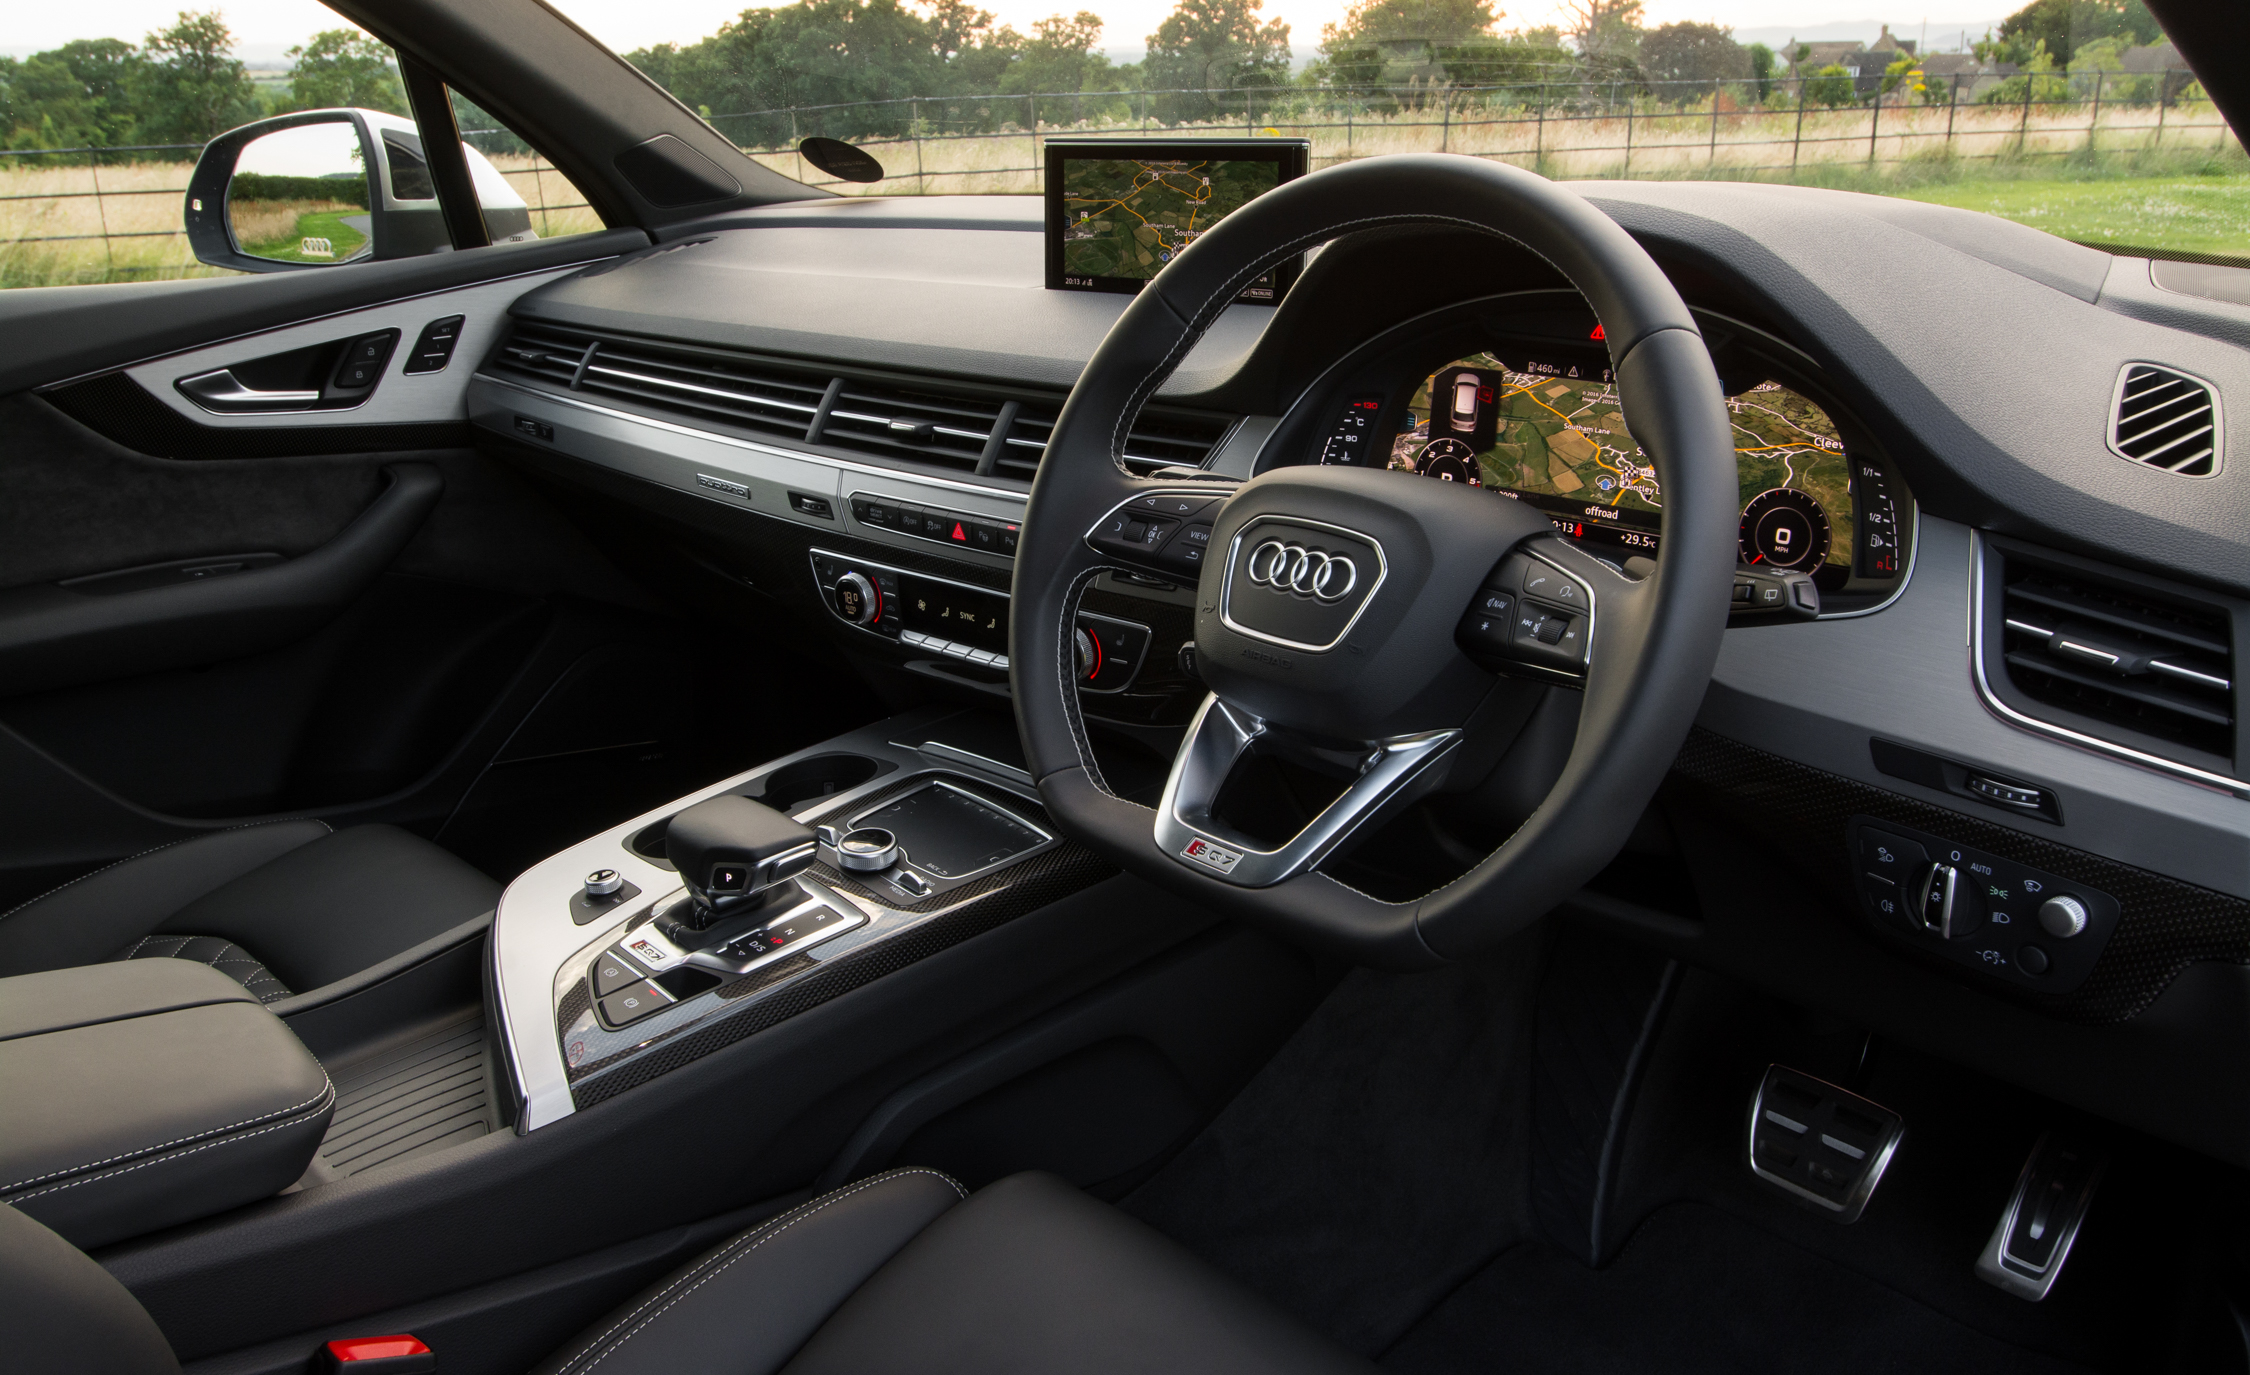 2017 Audi Sq7 Interior Cockpit And Dashboard (View 8 of 15)